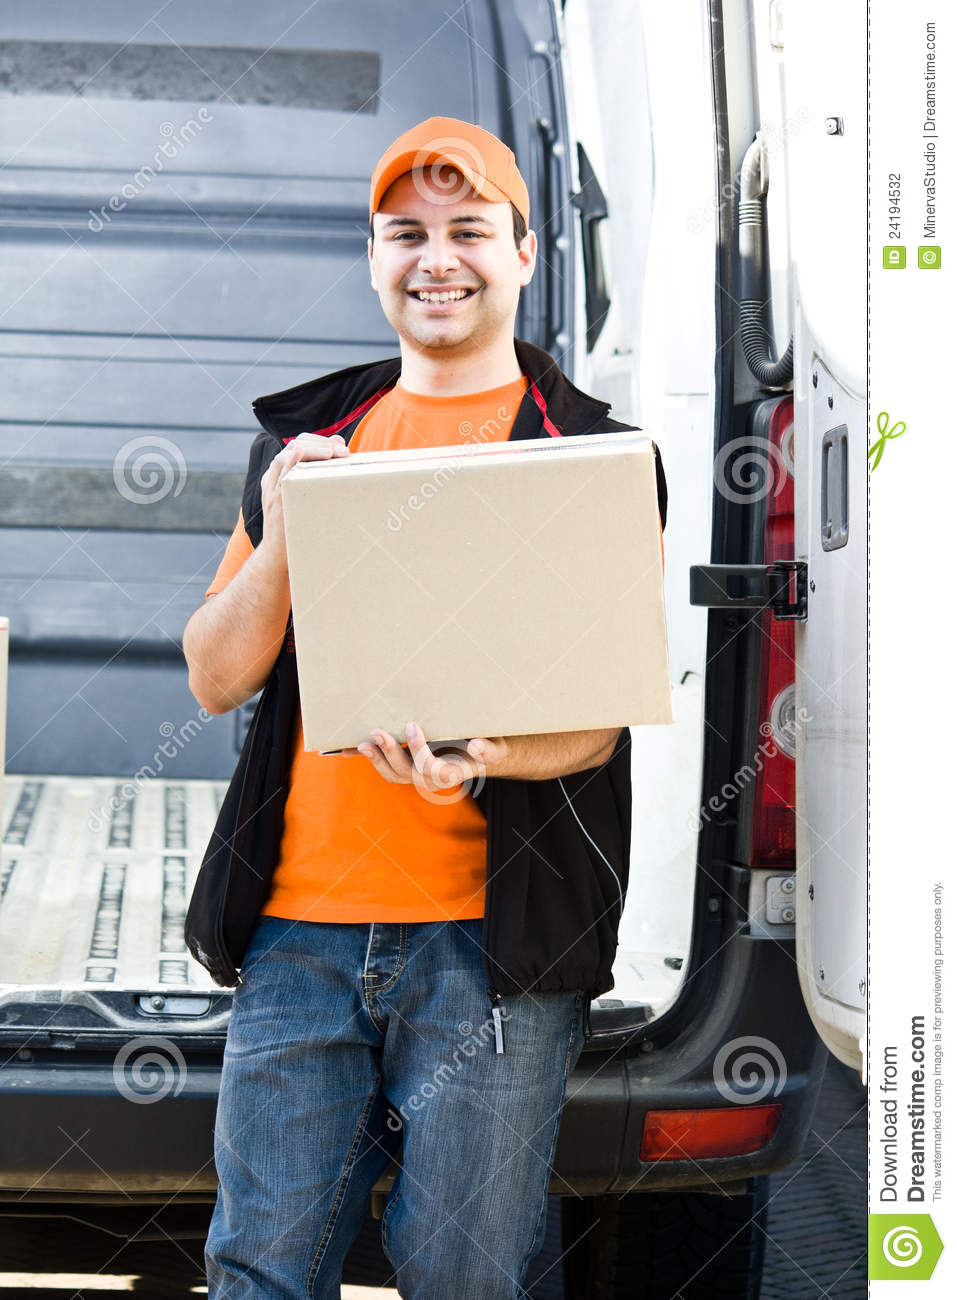 Delivery Boy Stock Photography Image 24194532